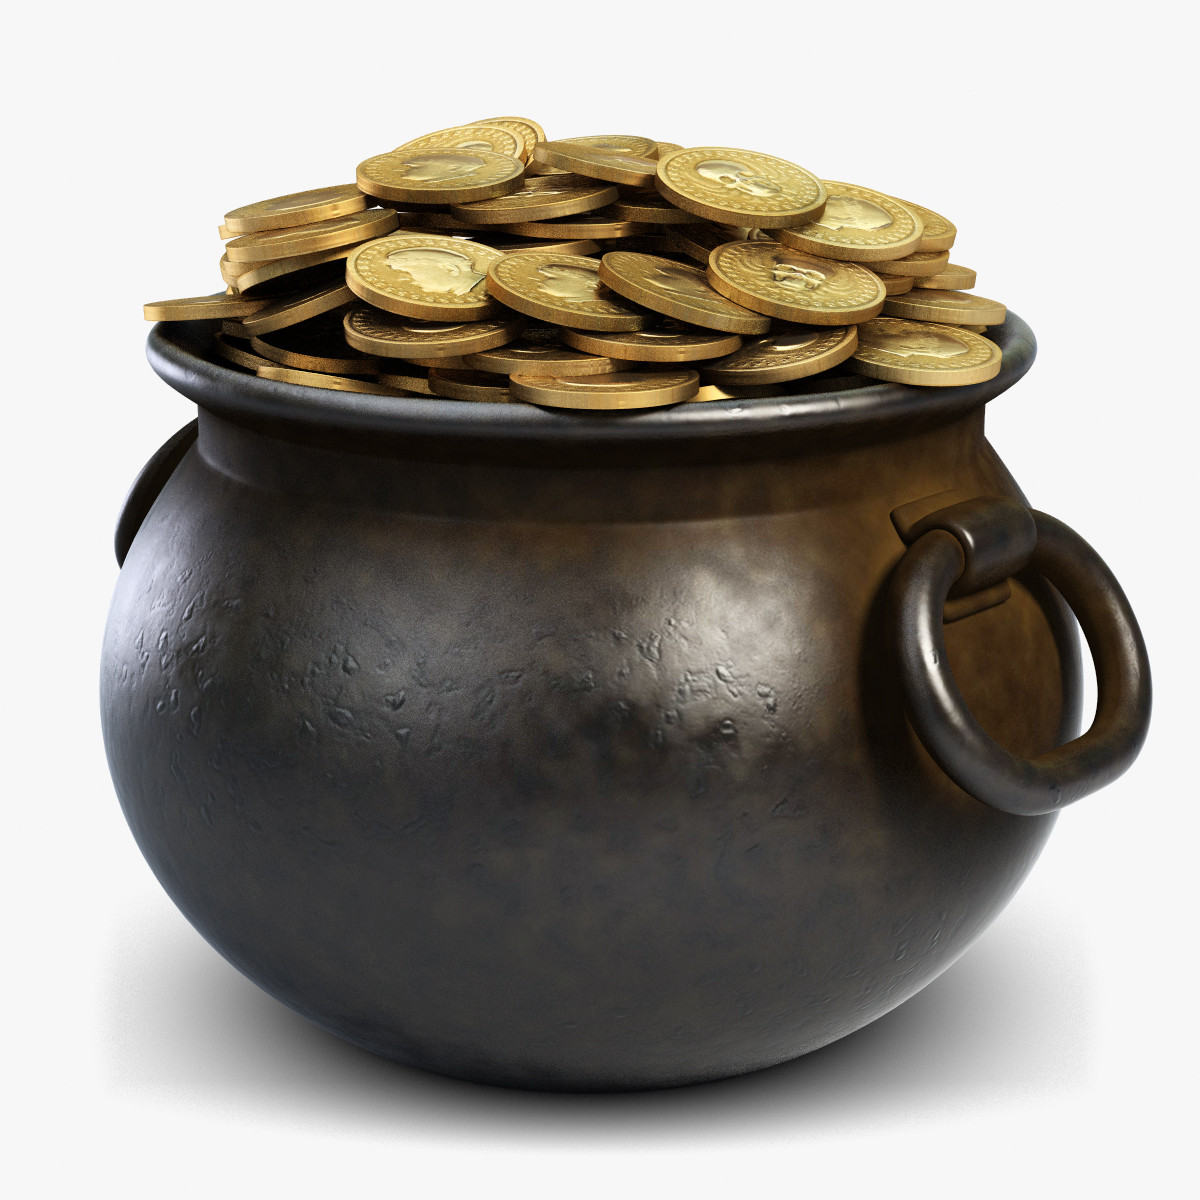 India: Labourers Accidentally Dig Up Pot Of Gold Coins